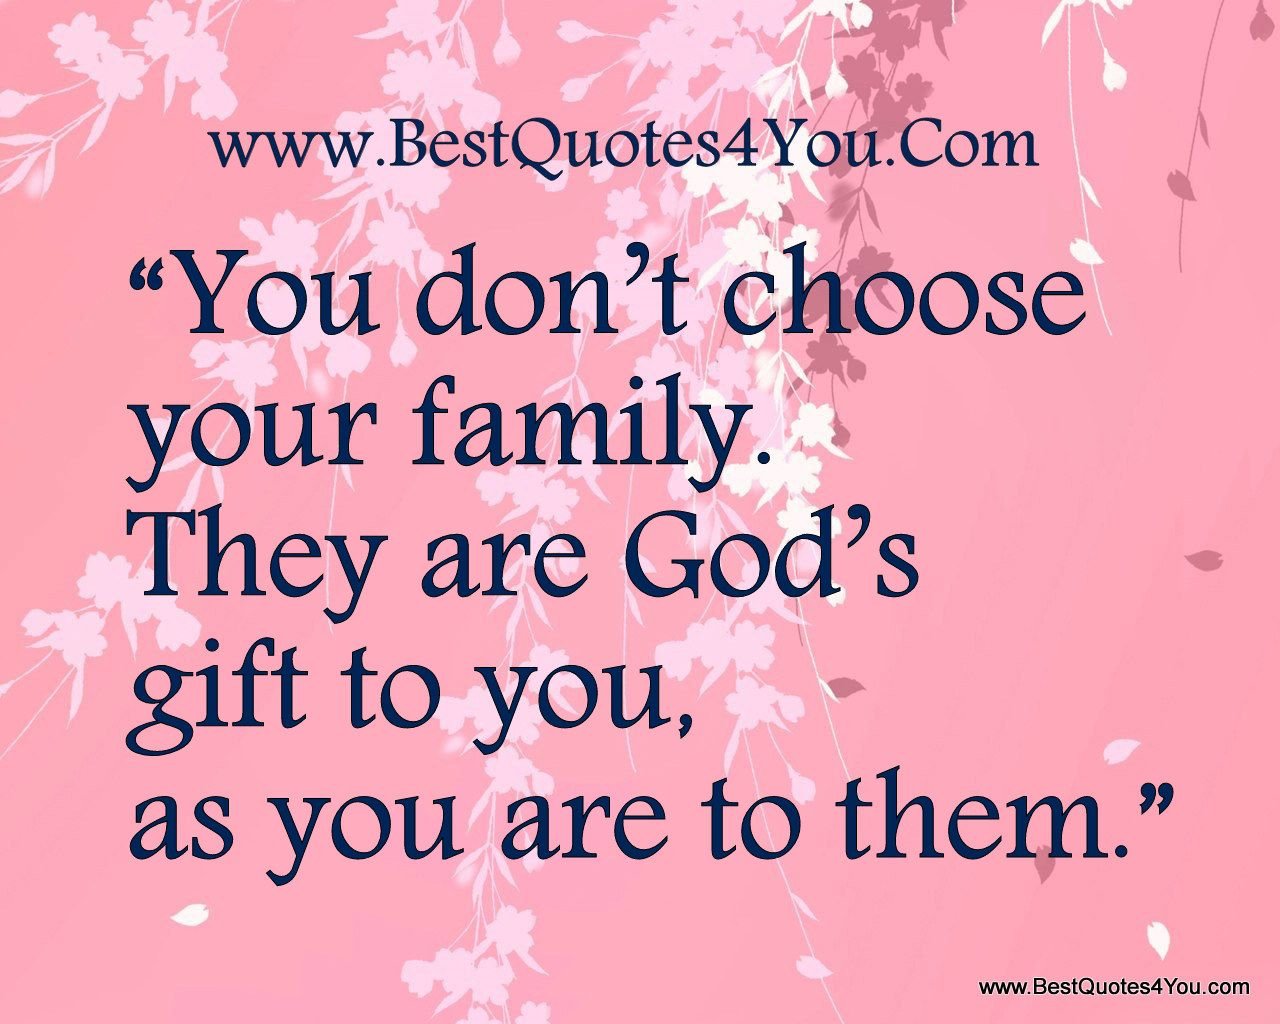 Loveyourfmily you dont choose your family they are gods gift family is the most cherished gift god gives to you negle Image collections